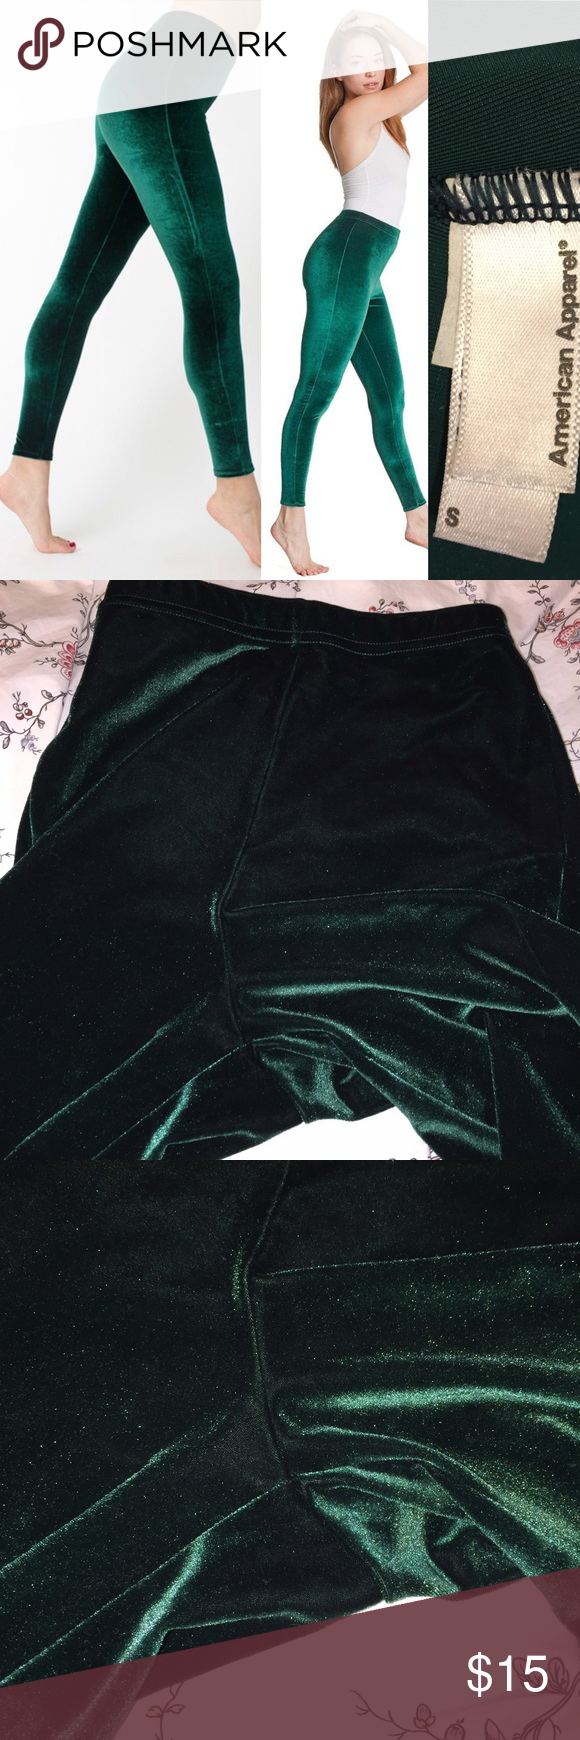 995f8347b8a0e AA EUC like new green velvet legging size S Excellent used condition American  Apparel green velvet leggings in size Small. Worn 2x at home for a few  hours ...